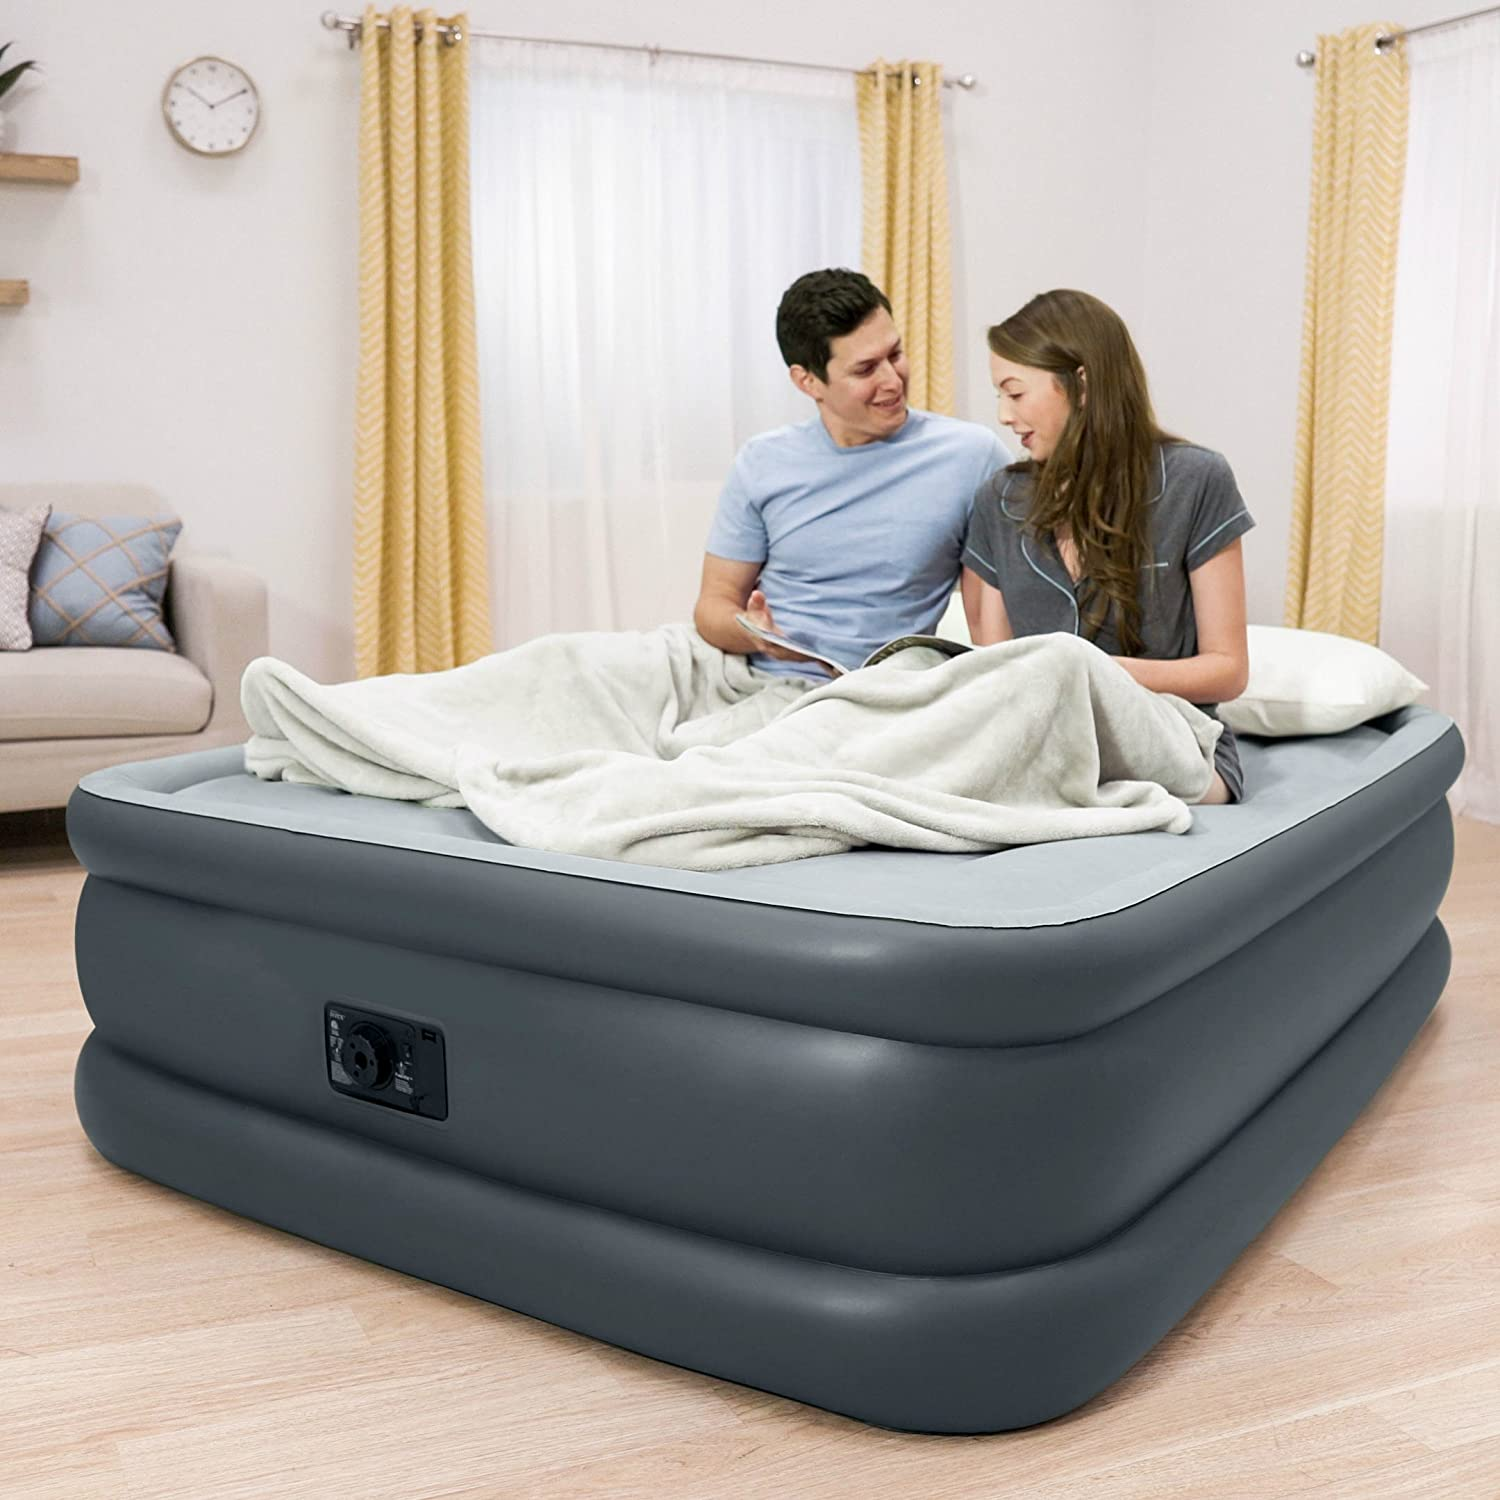 The 5 Best Air Mattresses for Children In 2021: Reviews & Buying Guide 6